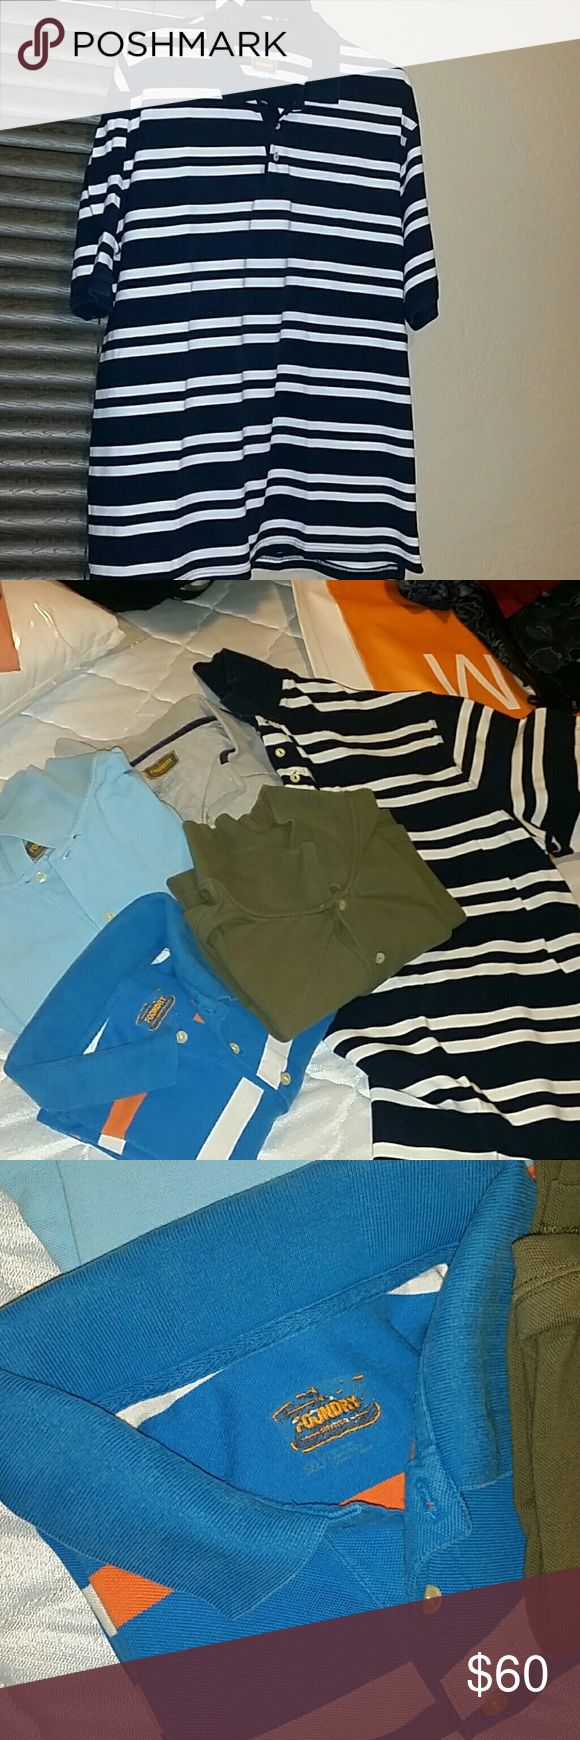 Men's short sleeve Polo shirts 1 light blue, 1 green, 1 gray, 2 multicolored stripped. All good condition. Great business casual shirts. Foundry Shirts Polos